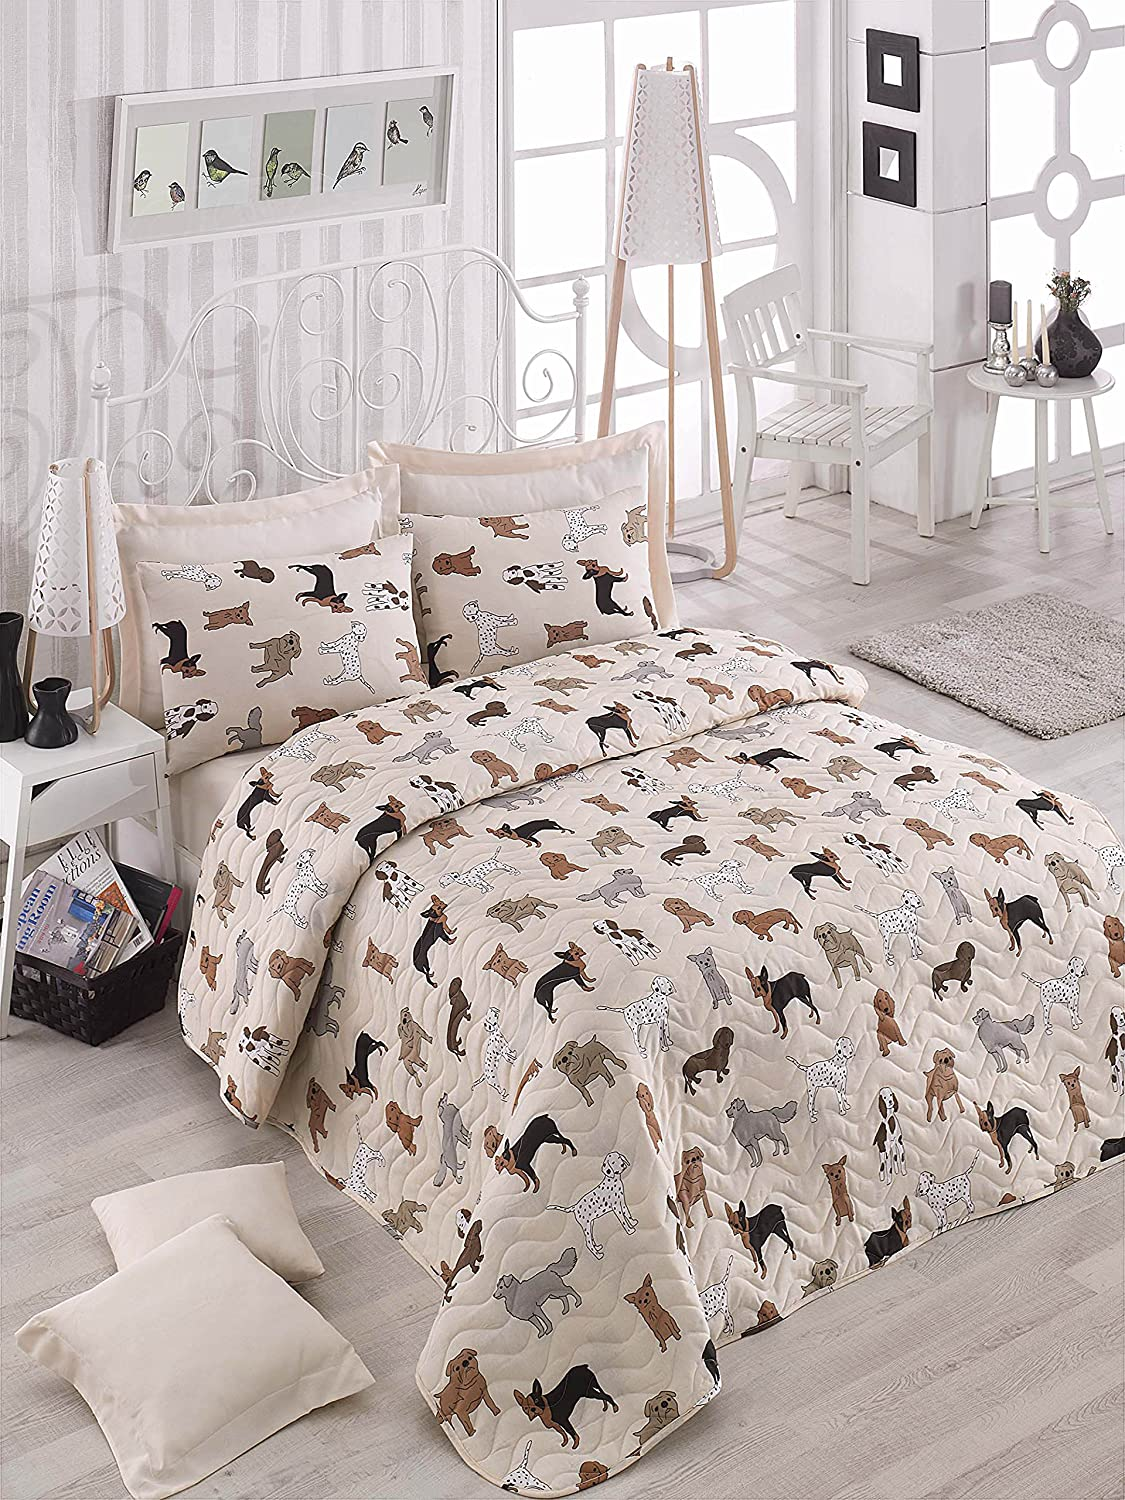 Animals Dogs Bedding, Full/Queen Size Bedspread/Coverlet Set, Dogs Themed Girls Boys Bedding, 3 PCS, DecoMood